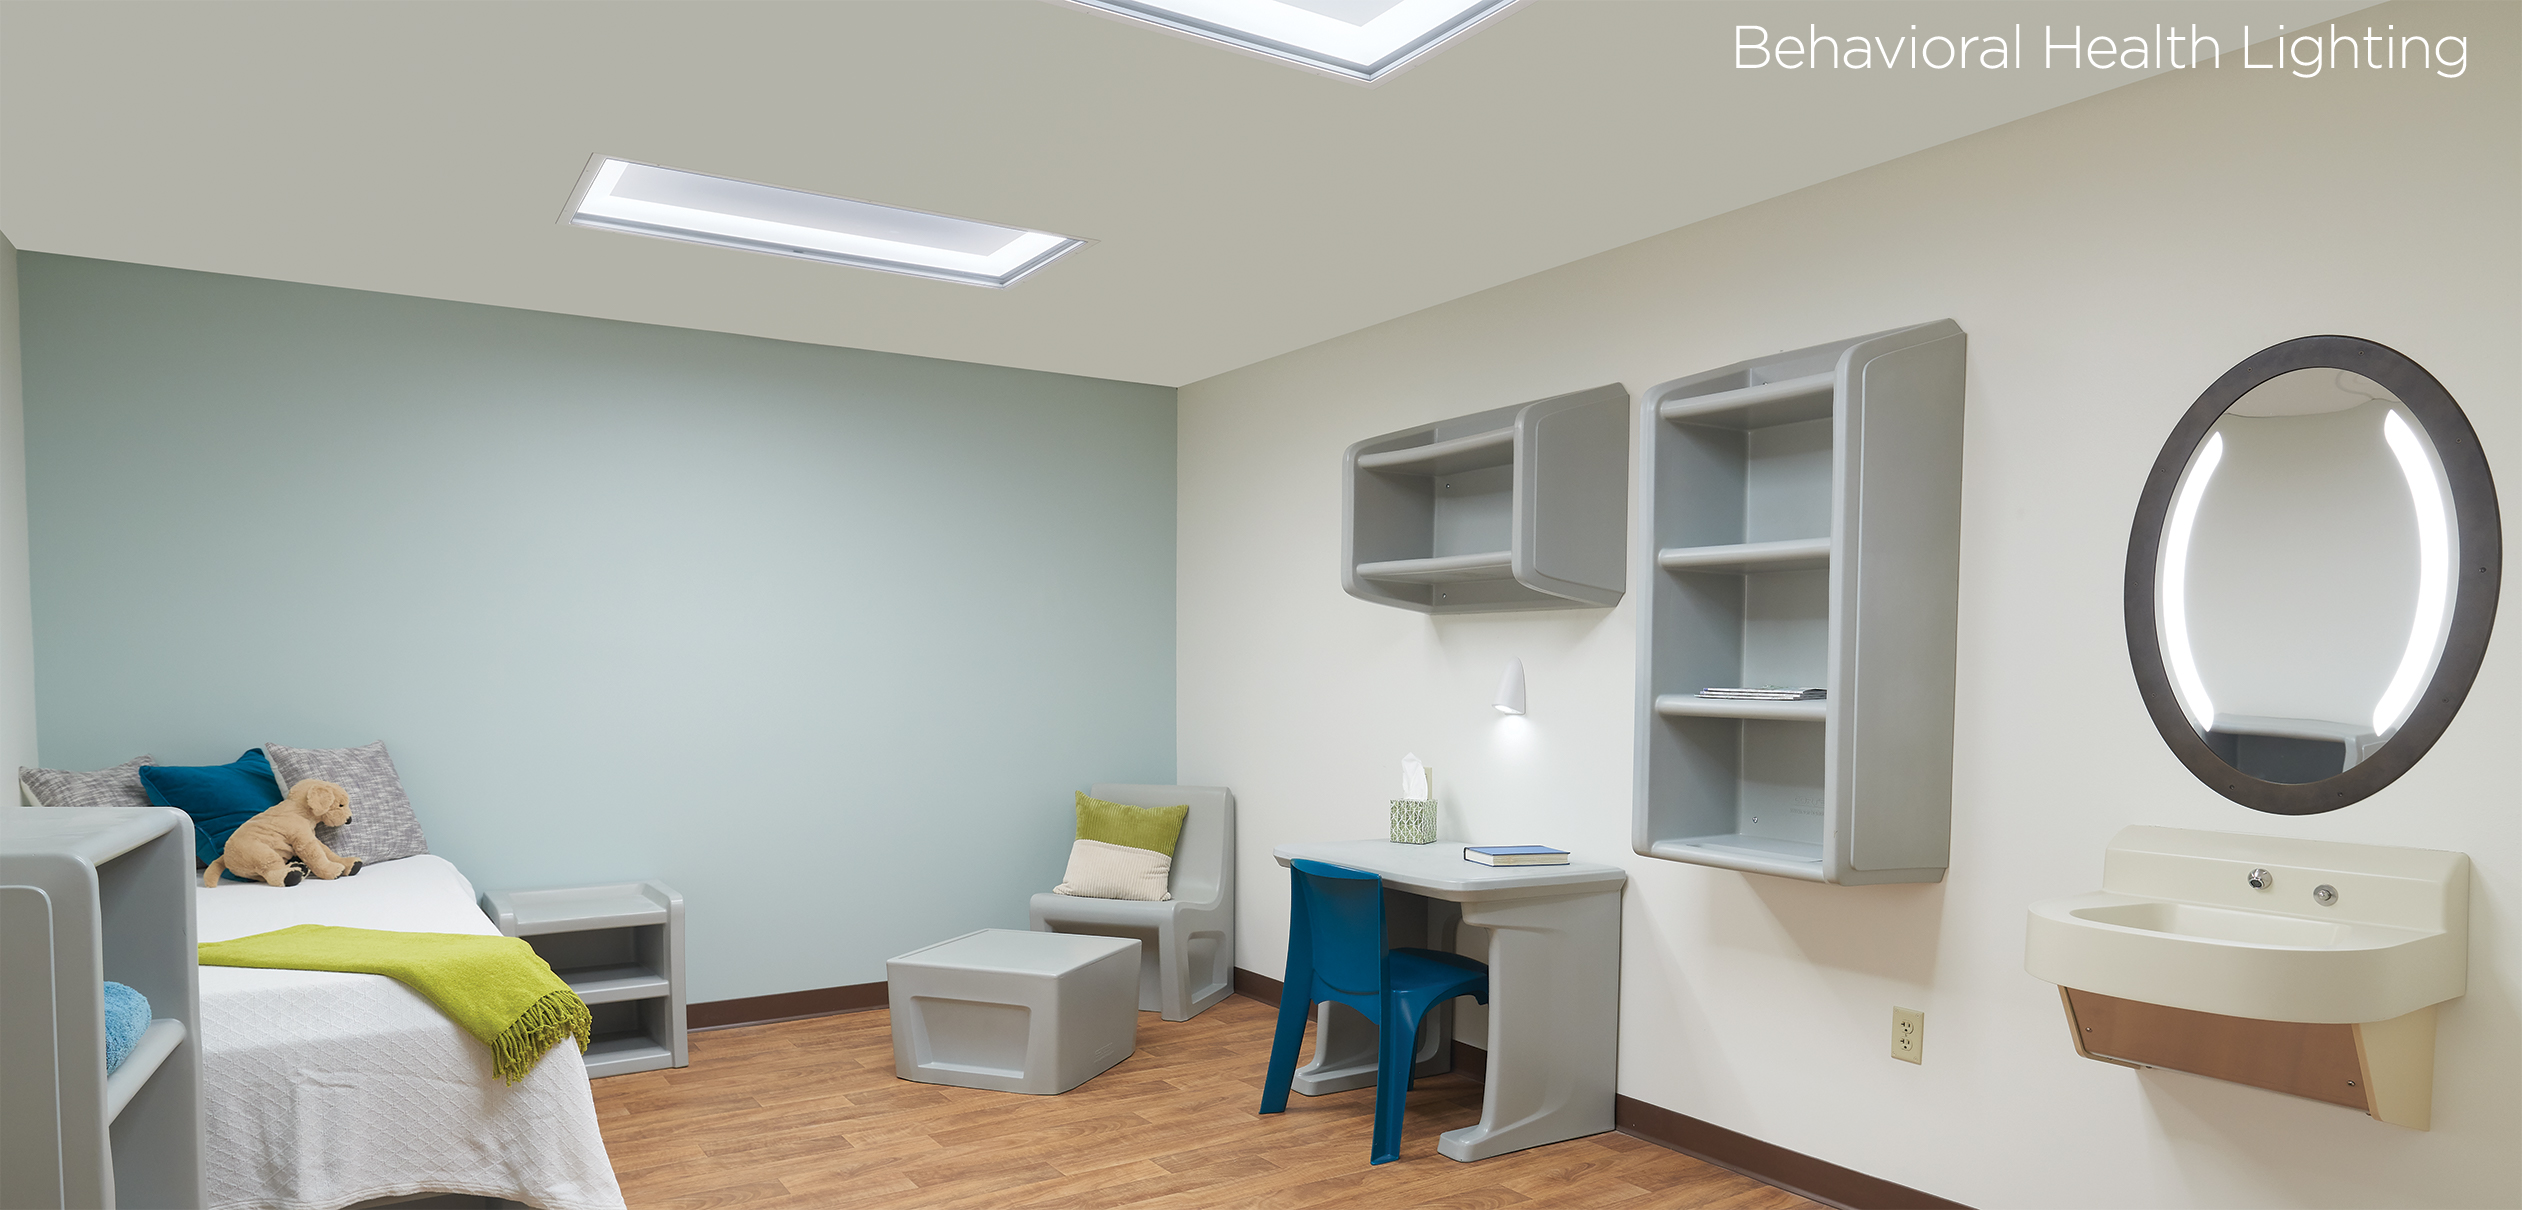 Behavioral health patient room with high abuse lighting